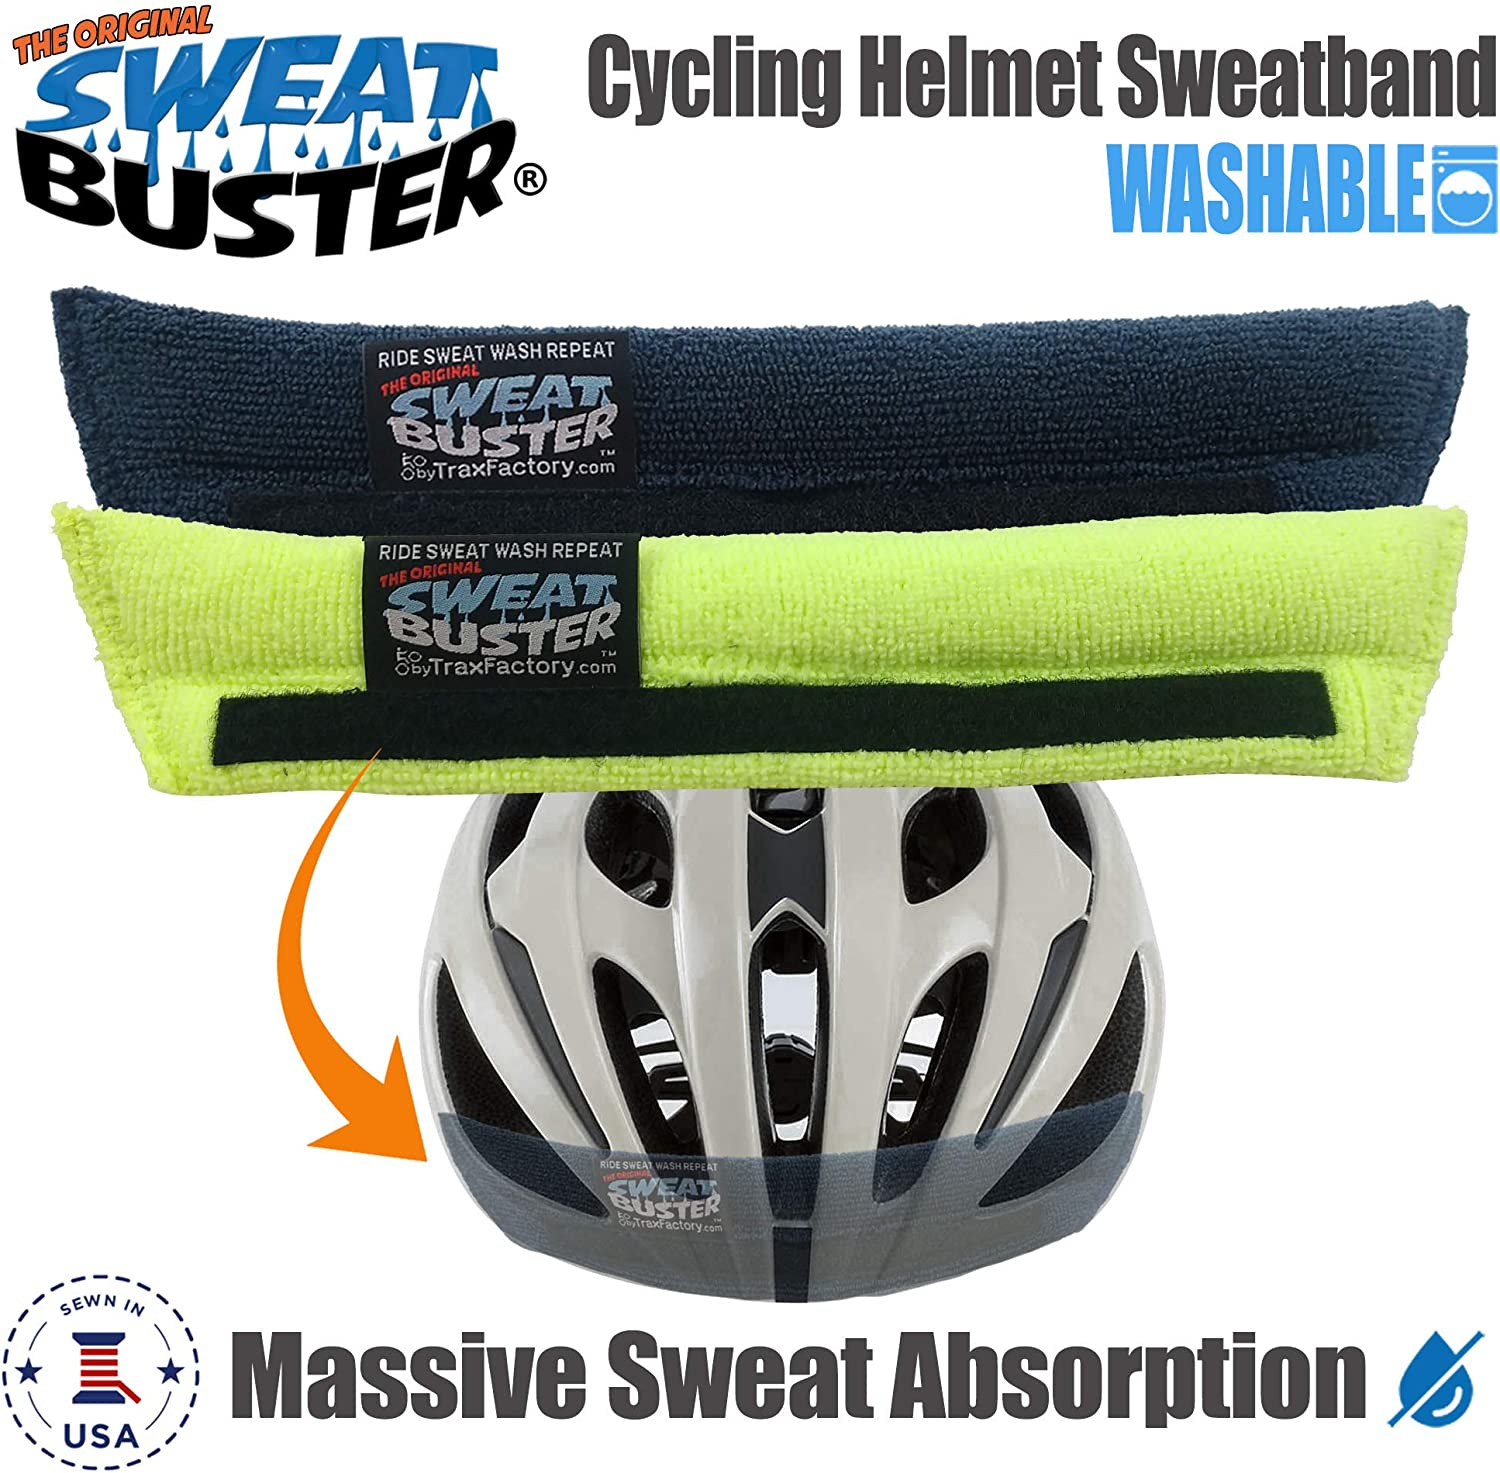 Sweat Buster Bike Helmet Sweatband – Stops Sweat Dripping, Keeps You Cooler, Premium Comfort, Simple Helmet Integration & Quick Removal for Washing. Mountain Biking, Road Biking or Any Cycling.